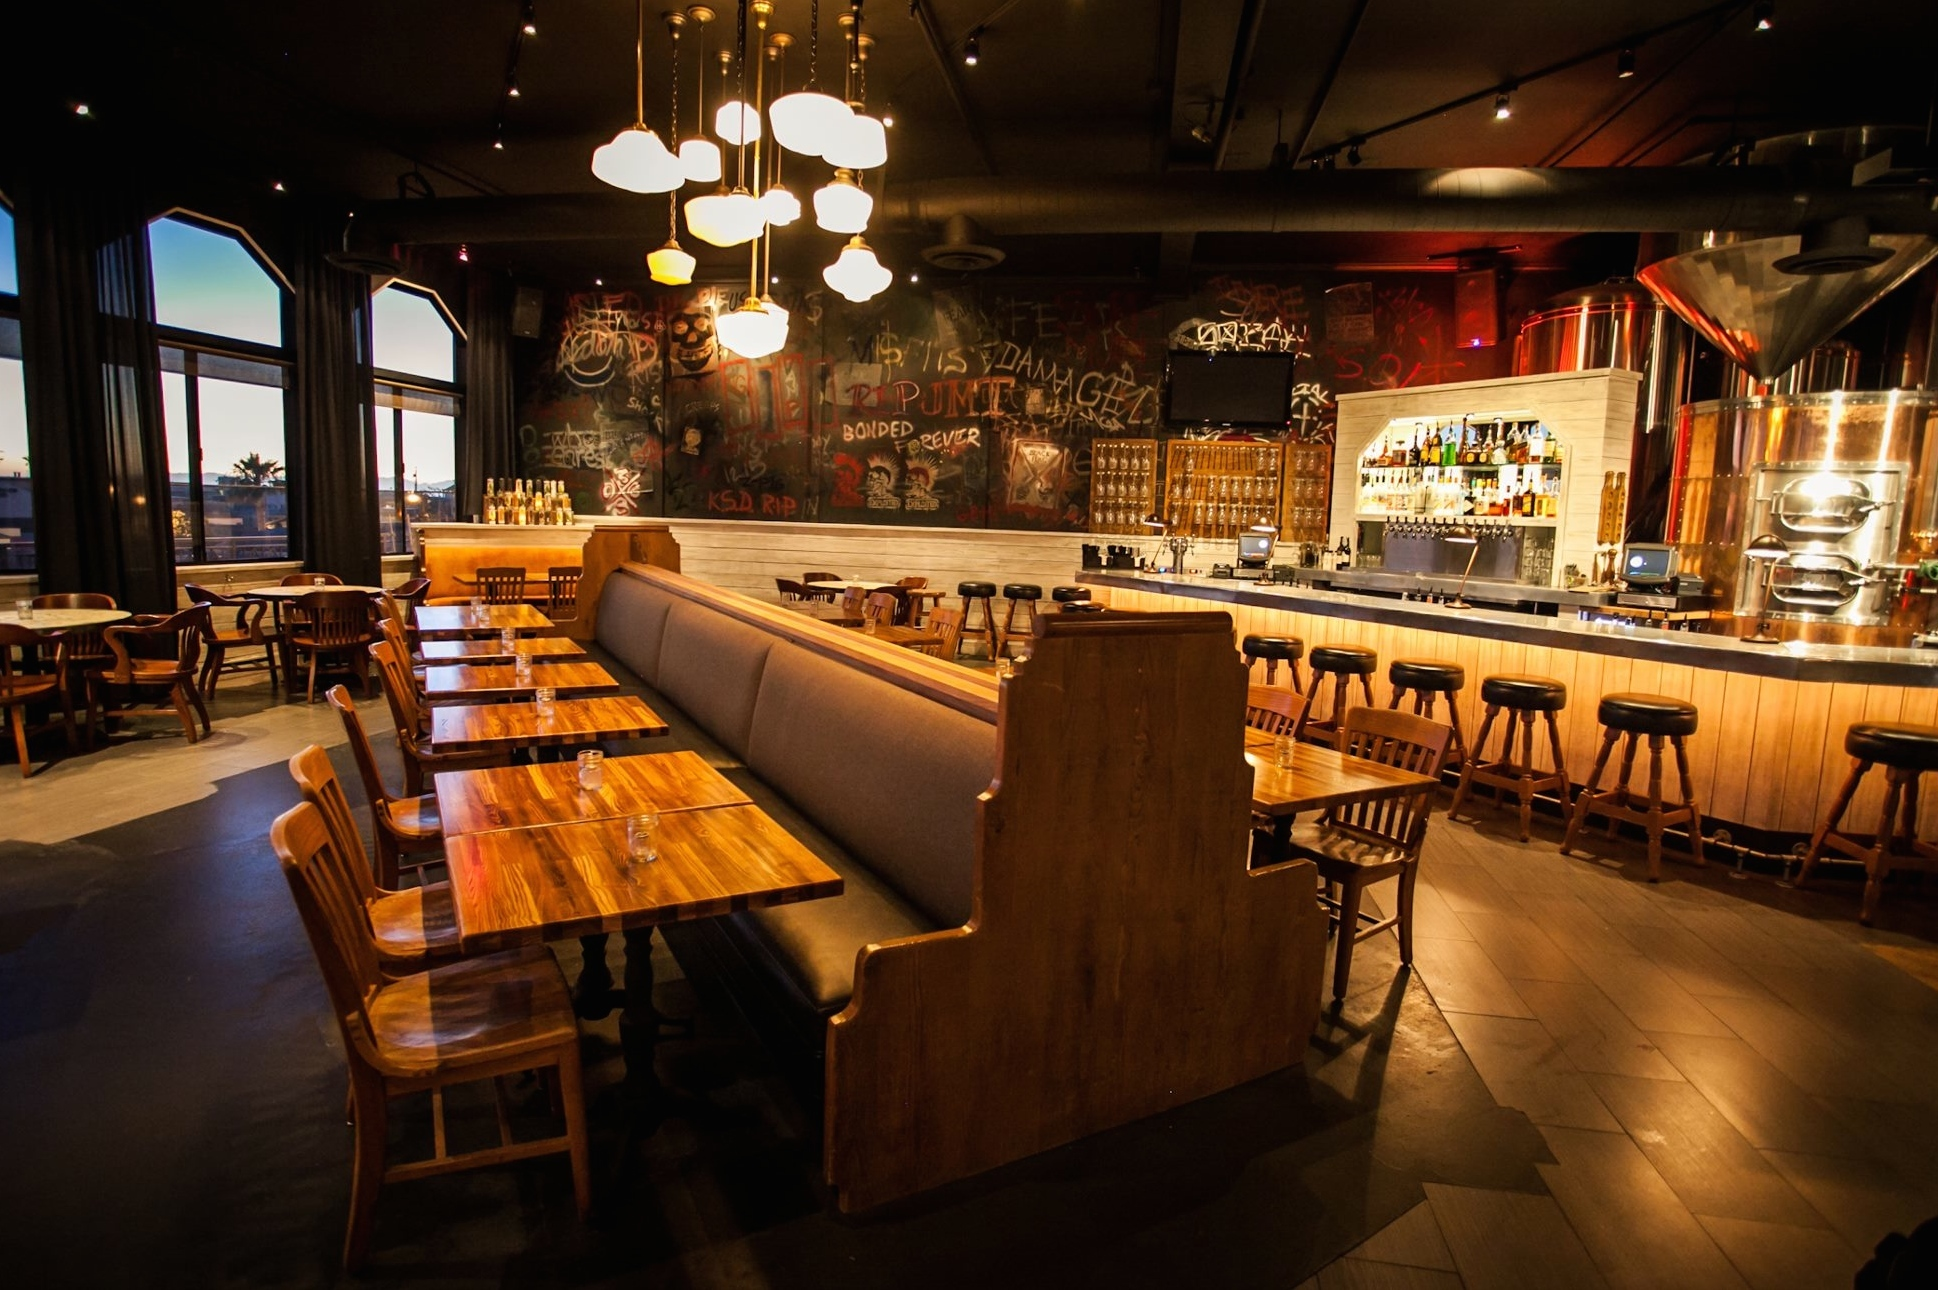 Abigaile Presents Wine Dinner Featuring Jackson Family Wines